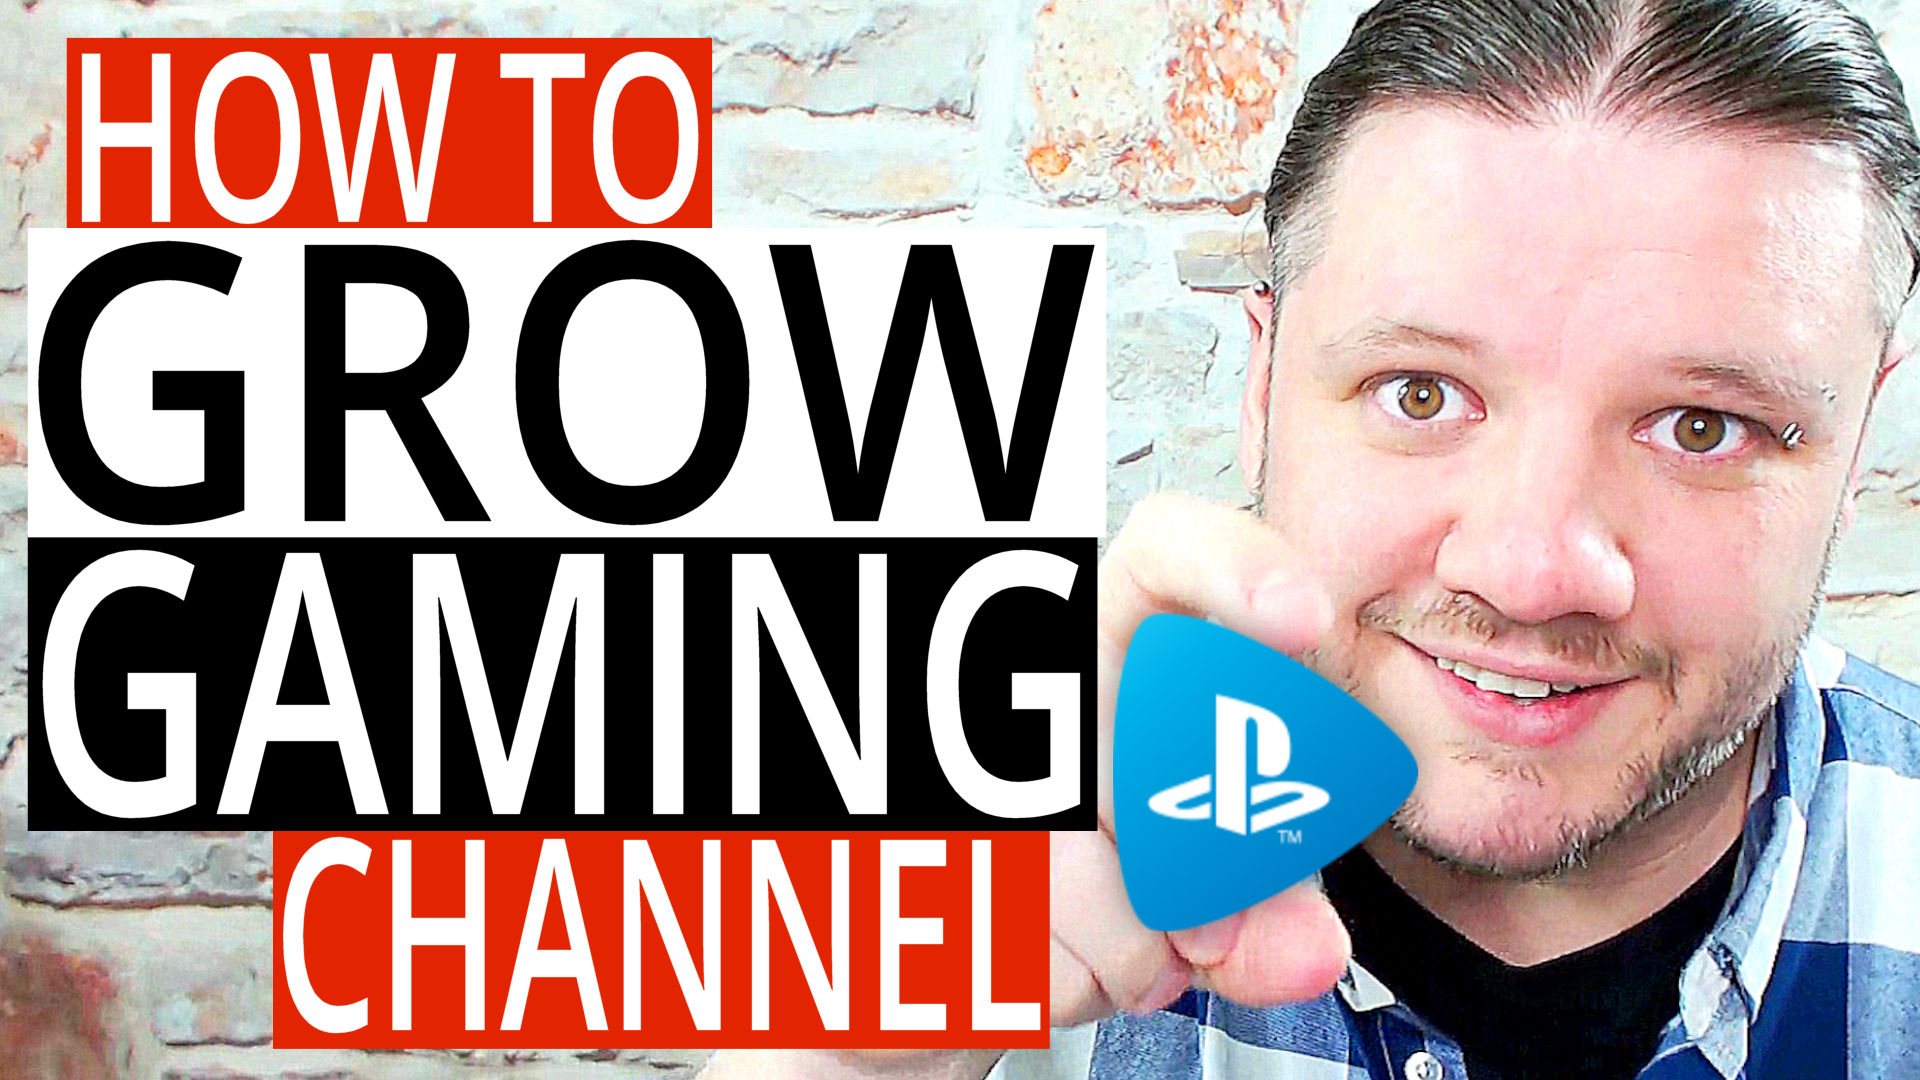 How To Grow A Gaming Channel on YouTube,How To Grow A Gaming Channel,how to grow on youtube,how to grow your youtube channel,how to grow a gaming channel 2018,how to grow a gaming channel fast,grow a gaming channel on youtube,grow a gaming channel 2018,how to promote your youtube gaming channel,how to get more subscribers on youtube gaming channel,how to start a youtube gaming channel,how to grow a youtube channel,youtube,youtube growth,gaming,letsplay,gaming channel